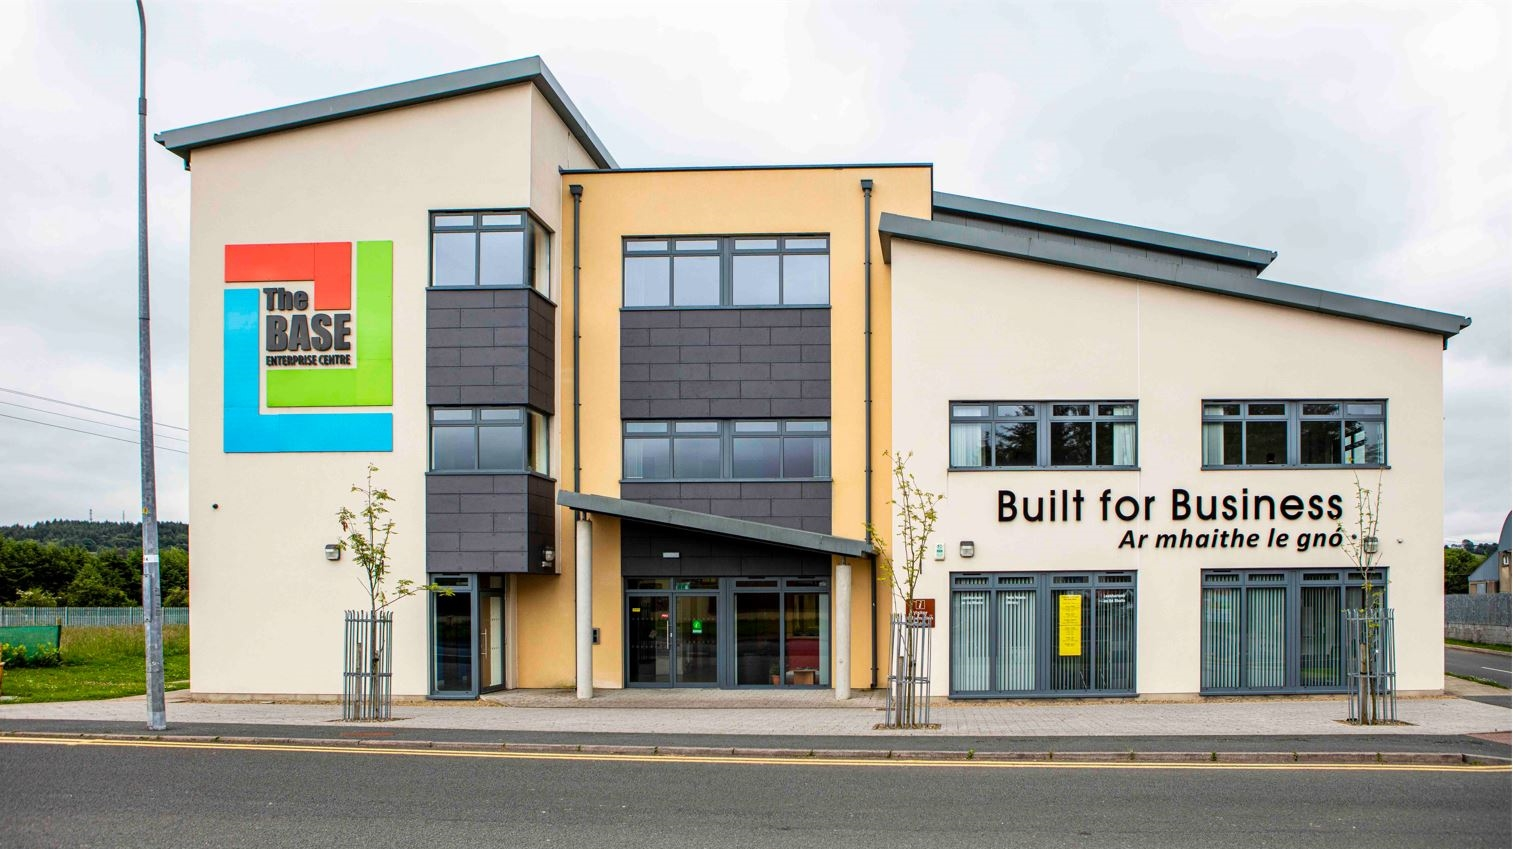 Donegal Digital and Digital Innovation Hubs across the county